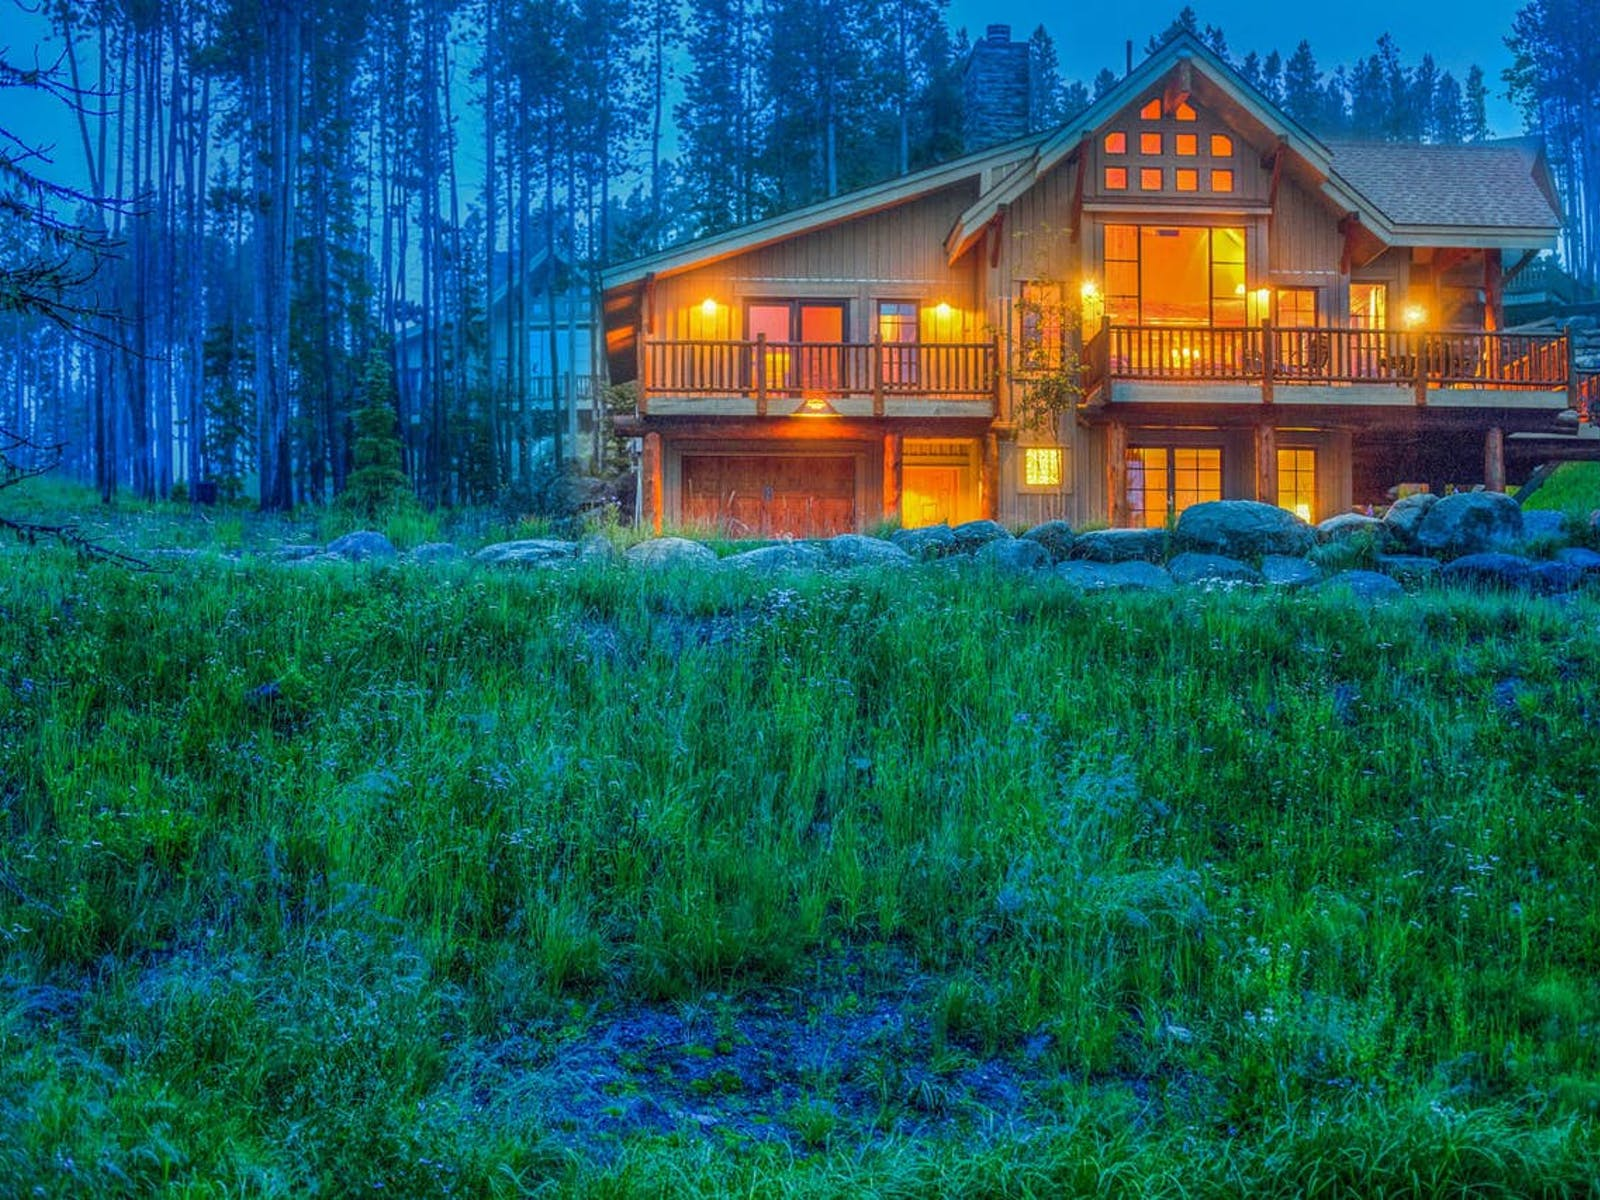 large vacation home in big sky, mt surrounded by trees and meadow